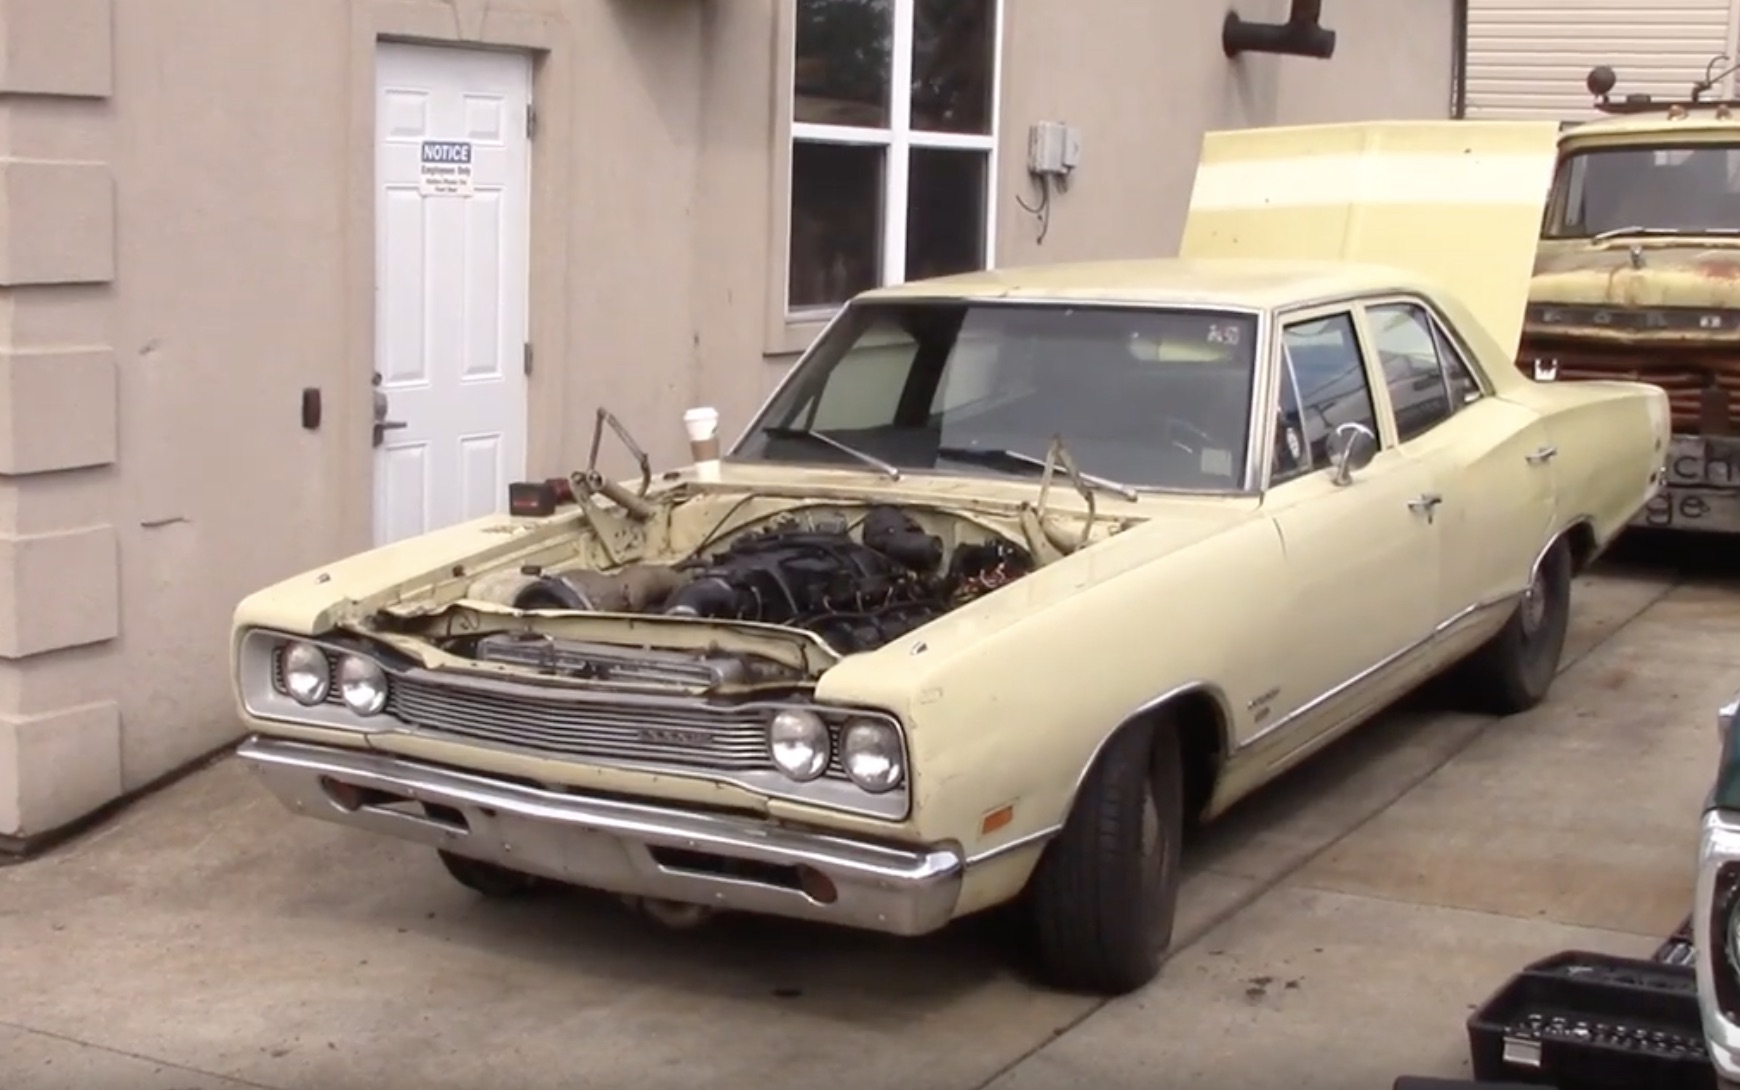 Fixing A Brick: This Dodge Coronet's Turbocharged 3G Hemi Gets An In-Depth Checkup!